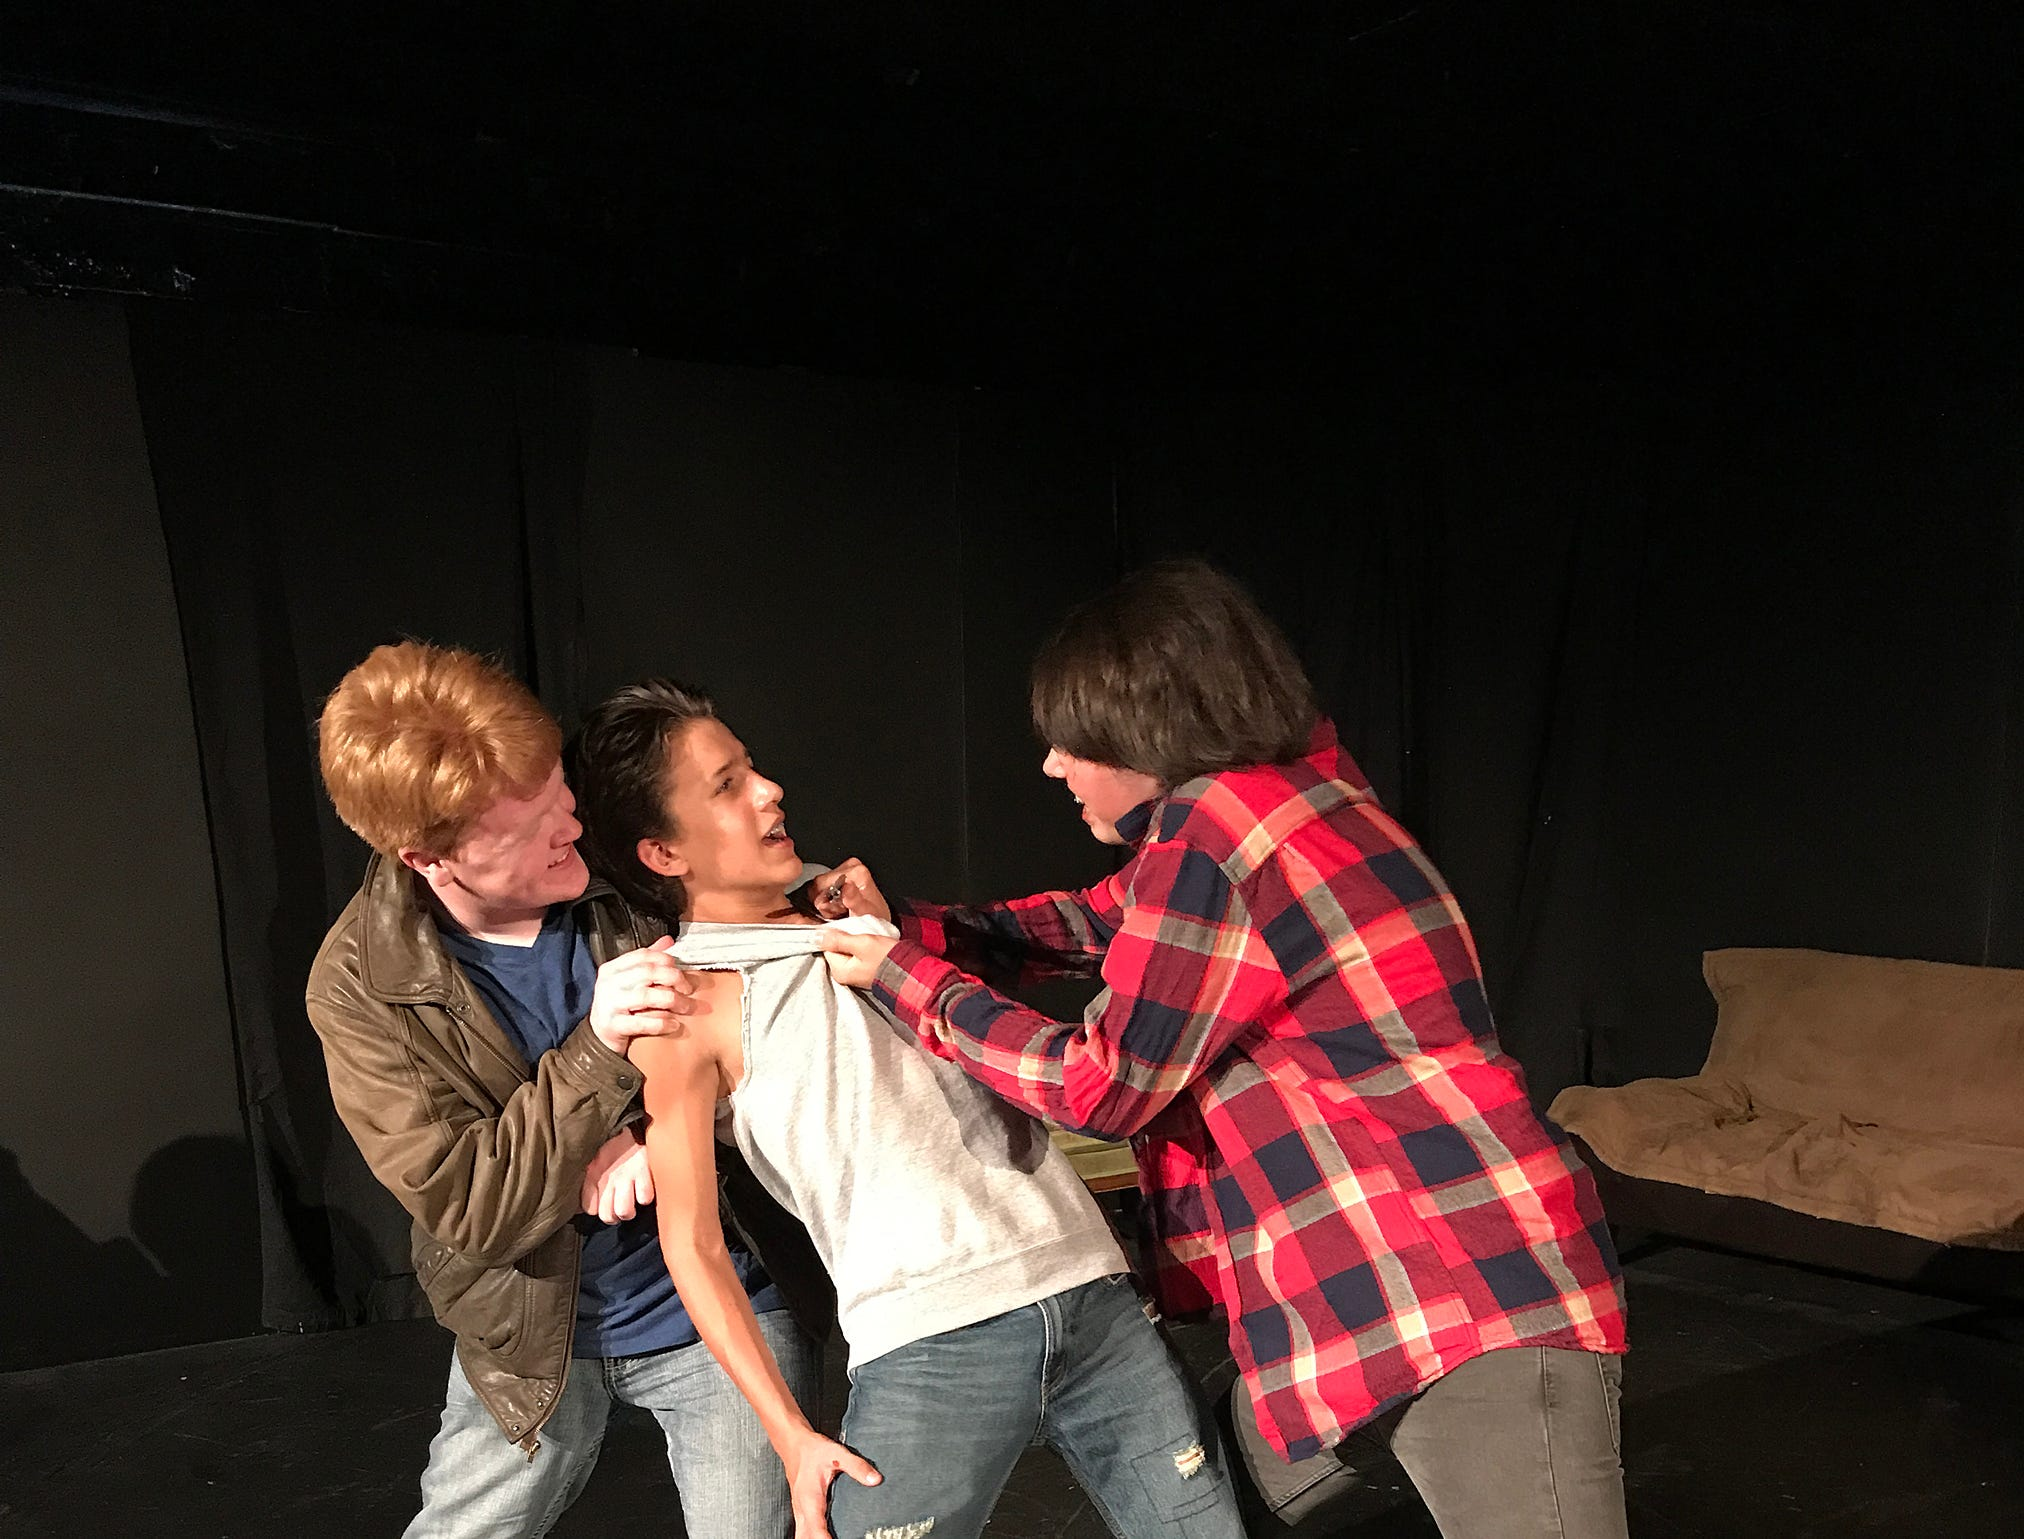 "Rival gang members Randy (Kyle Thompson), left, and Bob (Robert Burke), right, challenge Ponyboy Curtis (Jessie Lane Jr.) in a scene from ""The Outsiders."" The coming-of-age drama opens Aug. 3."